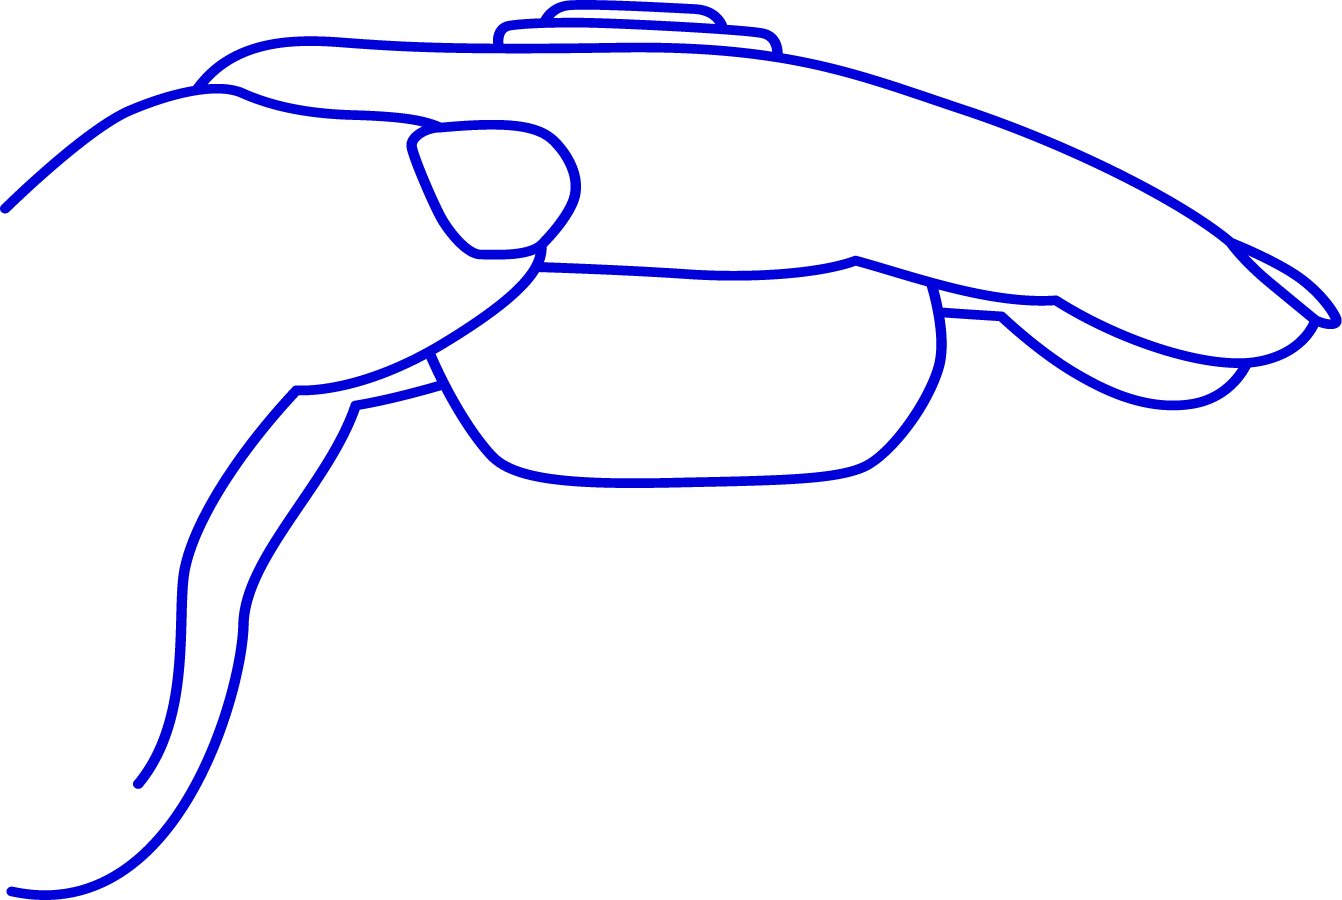 Image of hand cupped with fingers extended holding Fin between and underneath two fingers